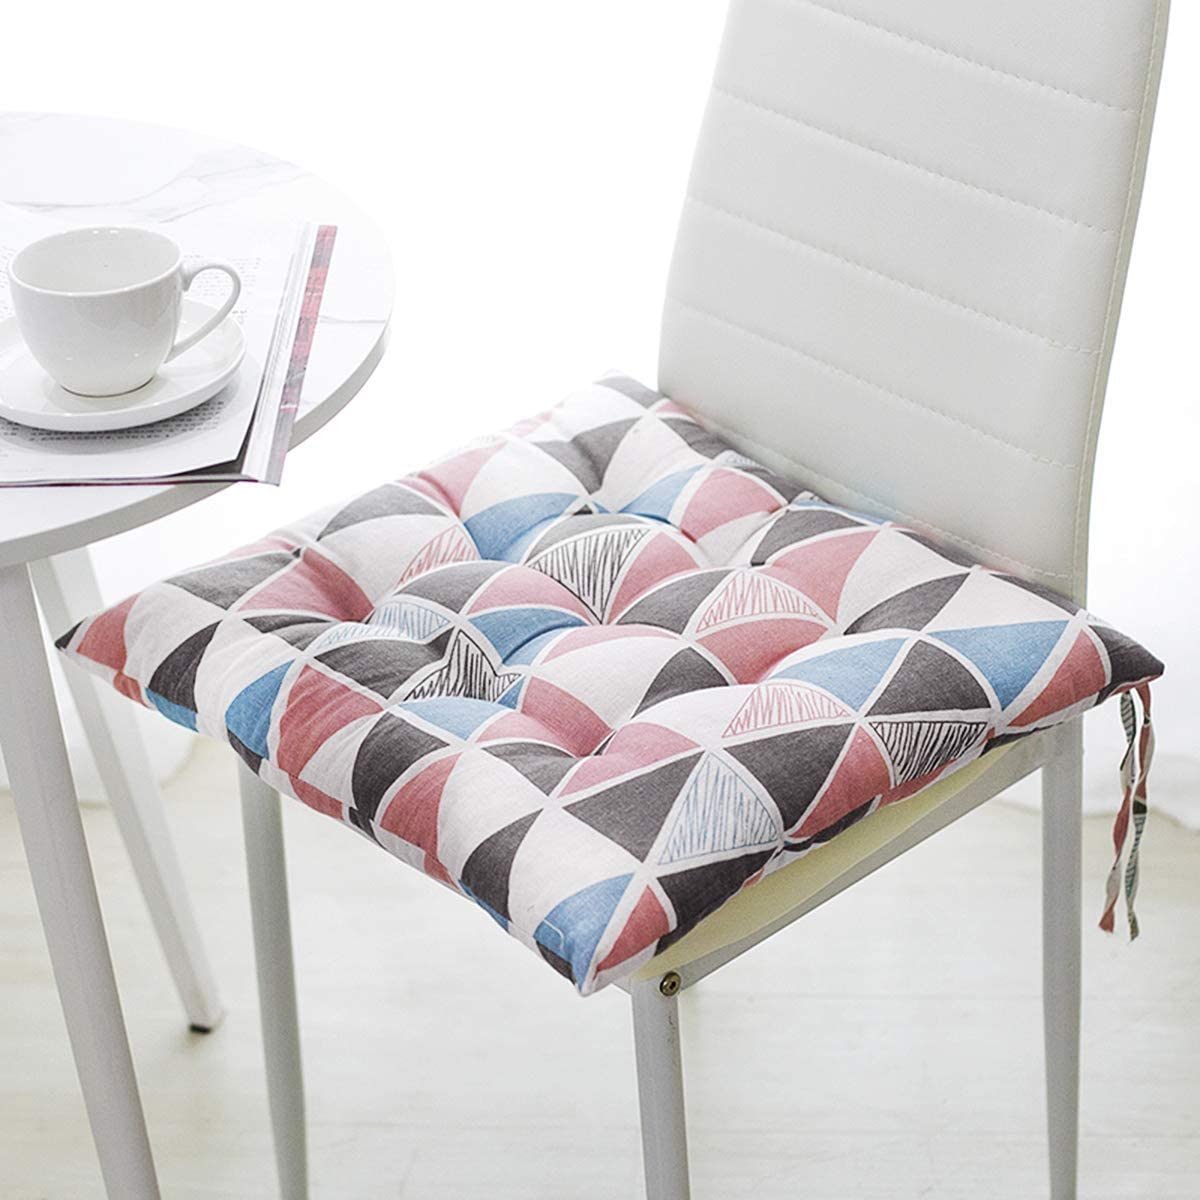 Super Soft Plush Chair Cushion with Tie Winter Warm Chair Pads Home Dining  Chair Decorative Anti-Skid Seat Pad Cover Cushion Mat for Office Home